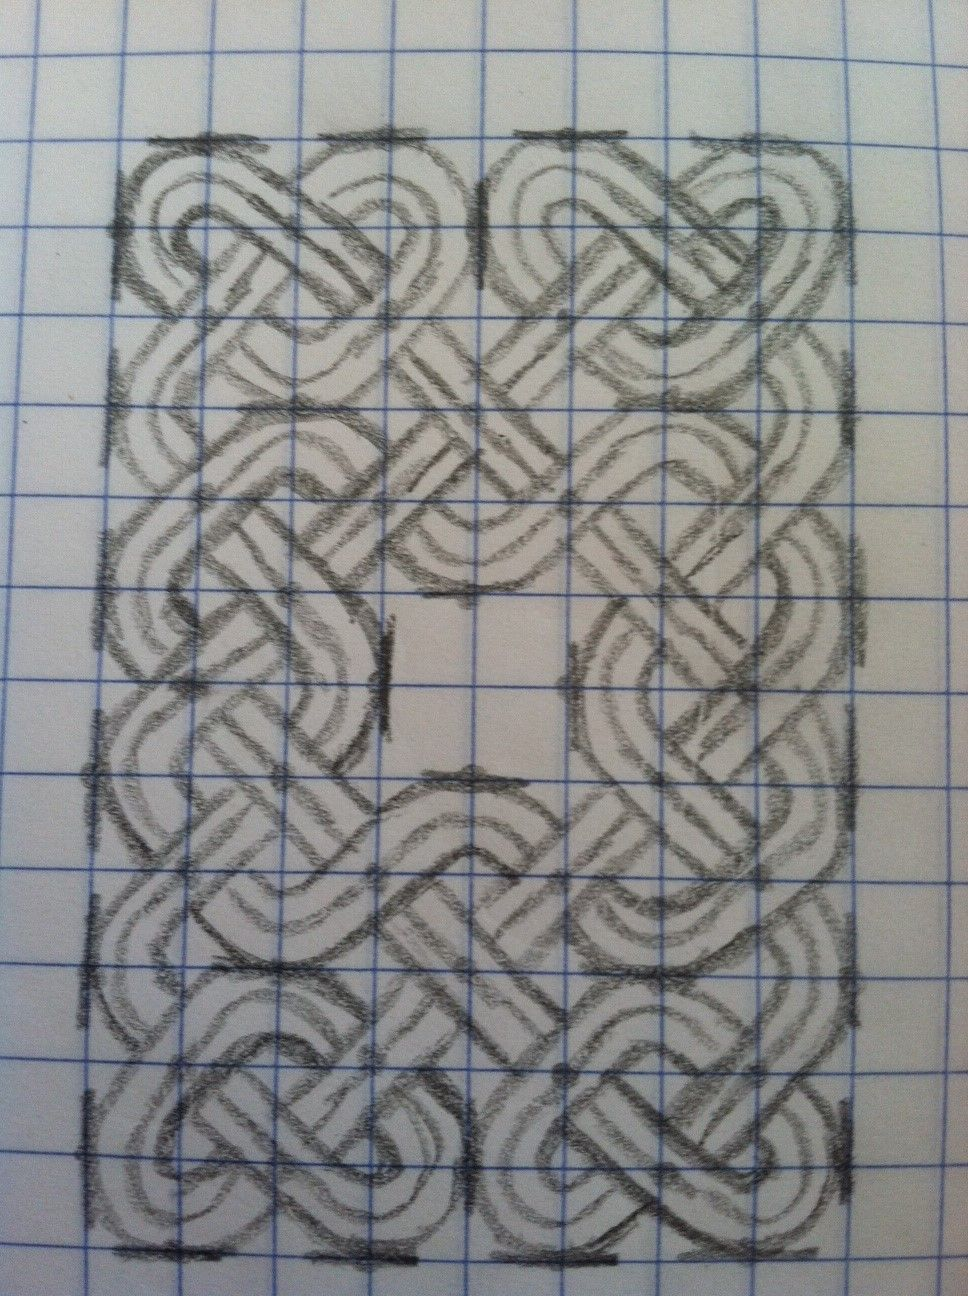 how to draw a celtic knot on graph paper